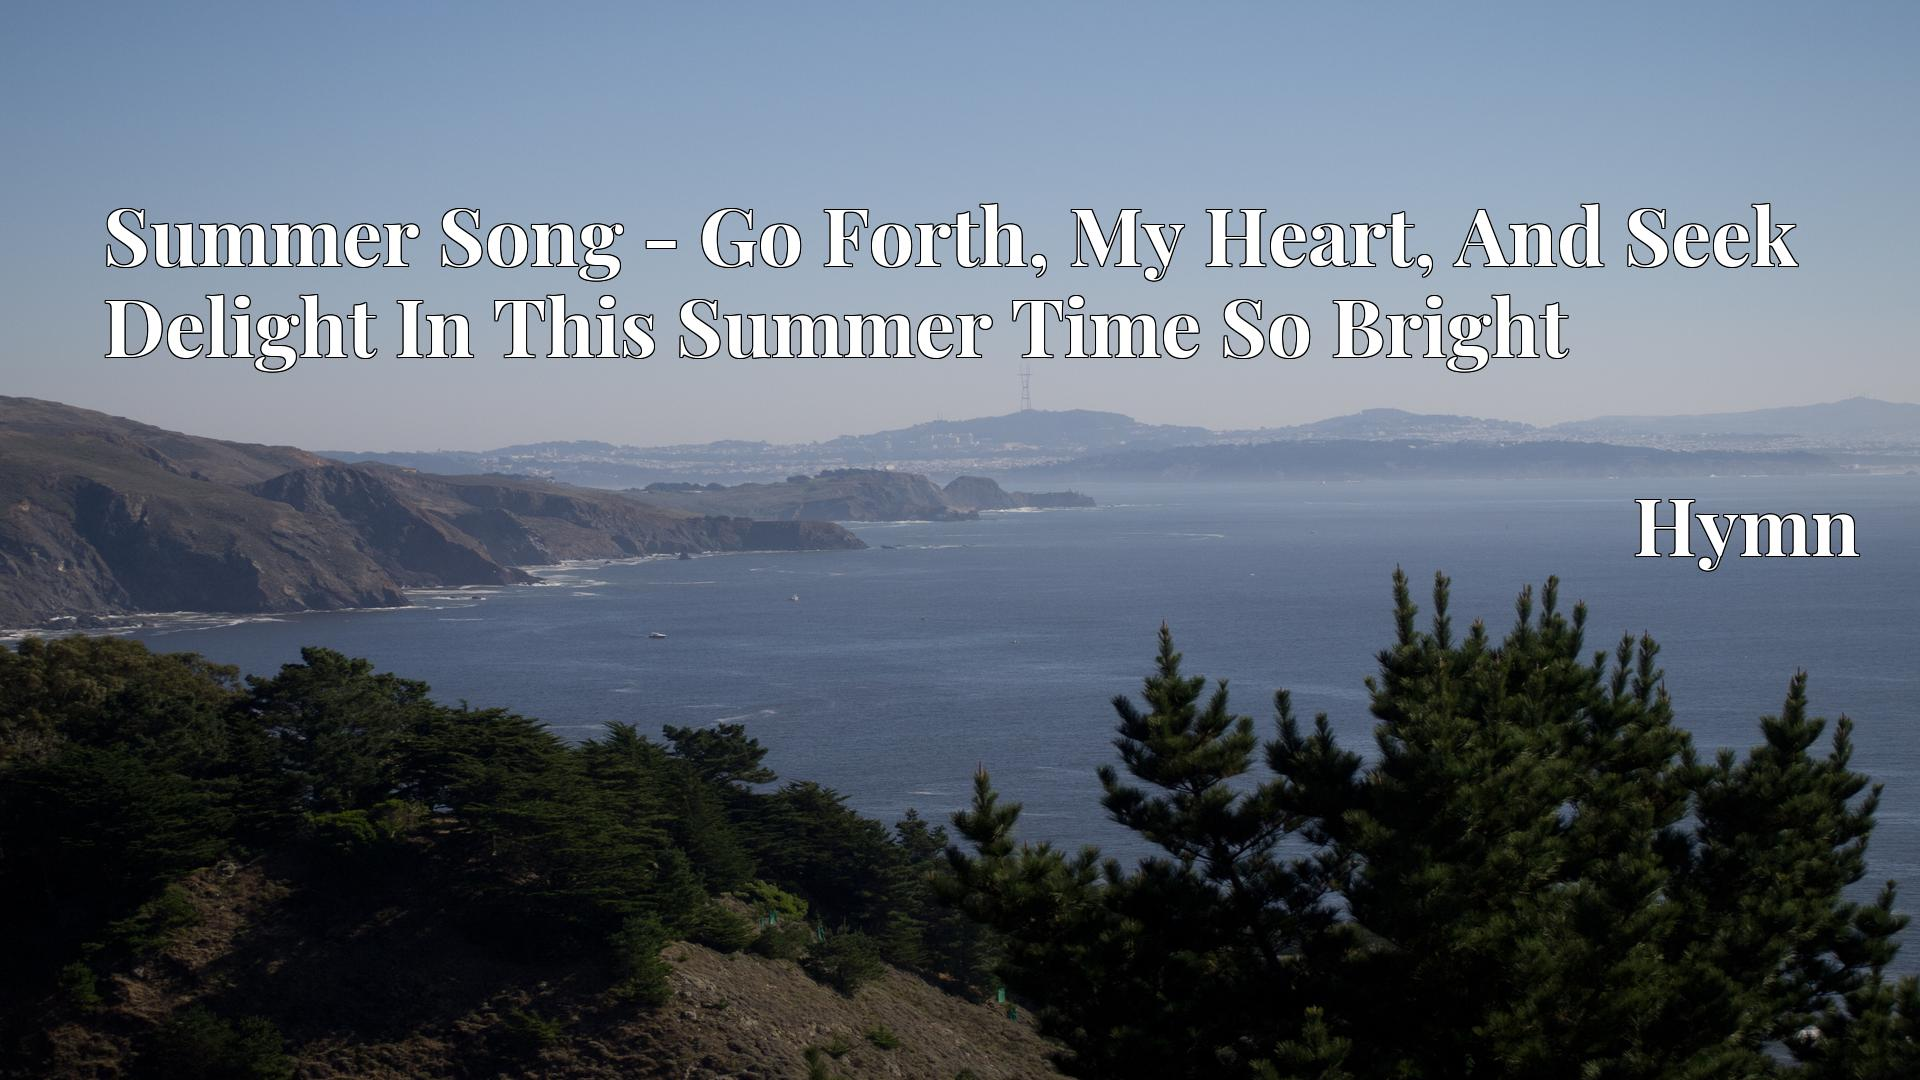 Summer Song - Go Forth, My Heart, And Seek Delight In This Summer Time So Bright - Hymn